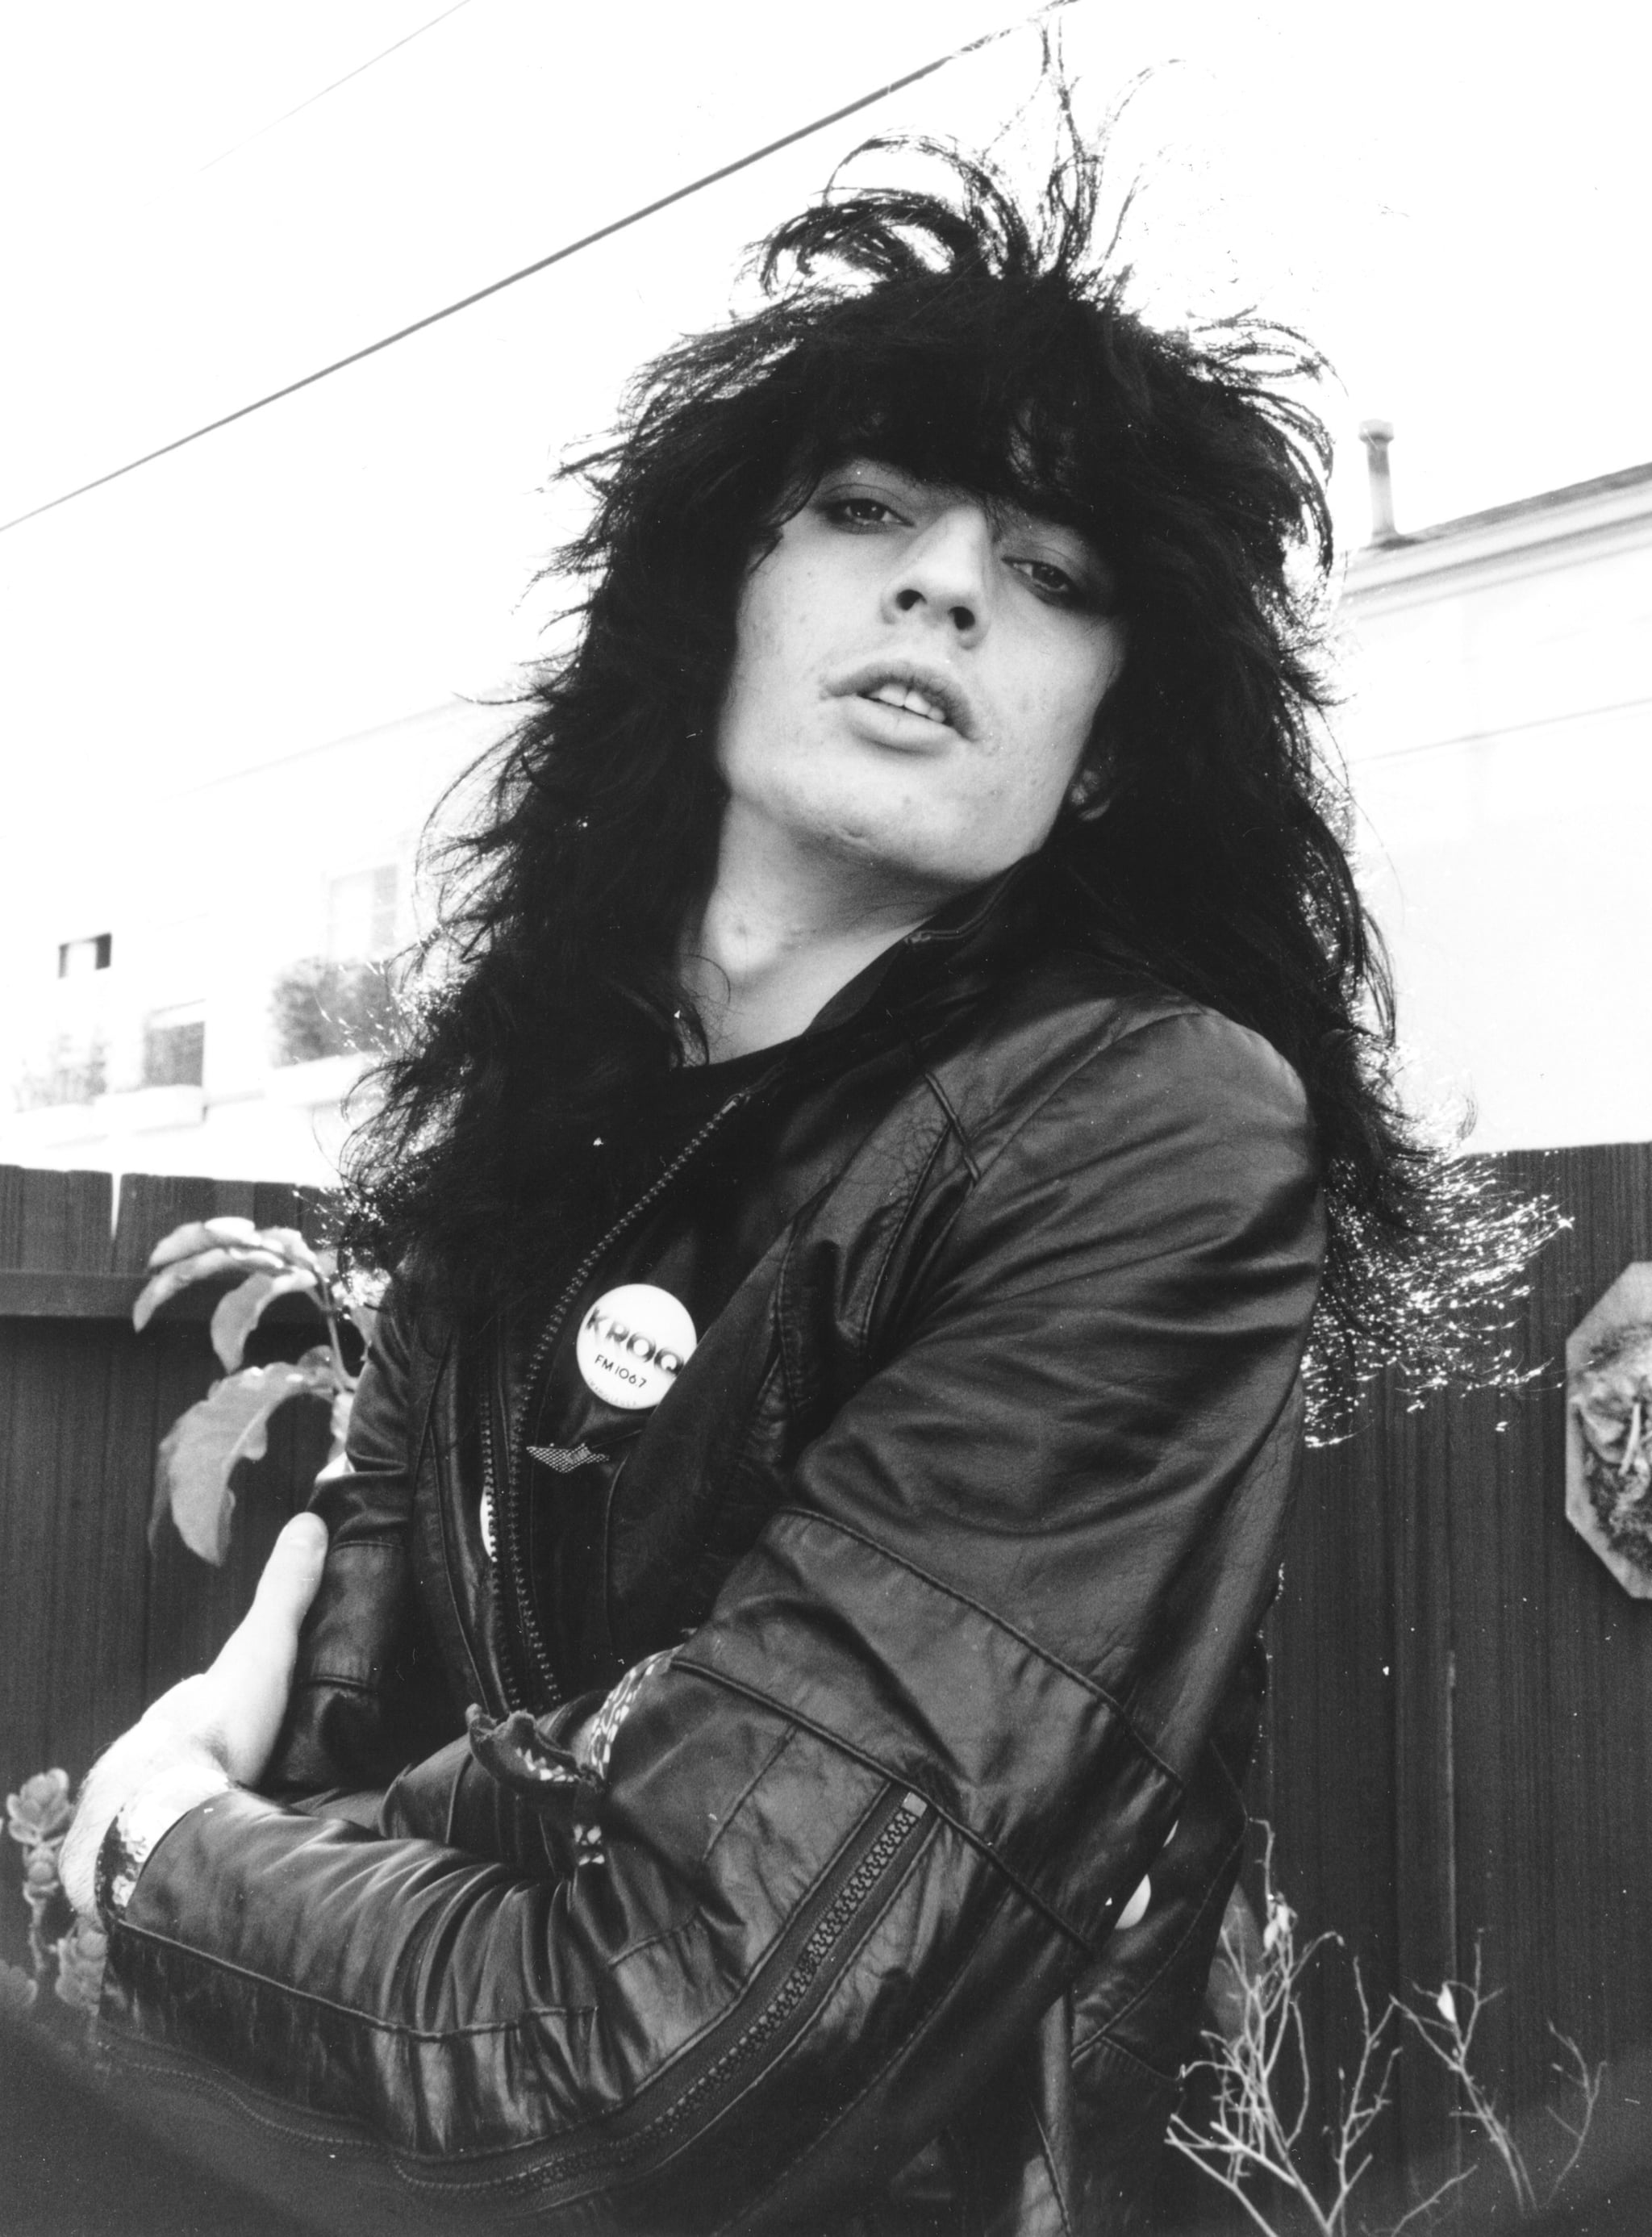 Tommy Lee of Motley Crue, 1981 | Attention Groupies: Hair-Raising ...